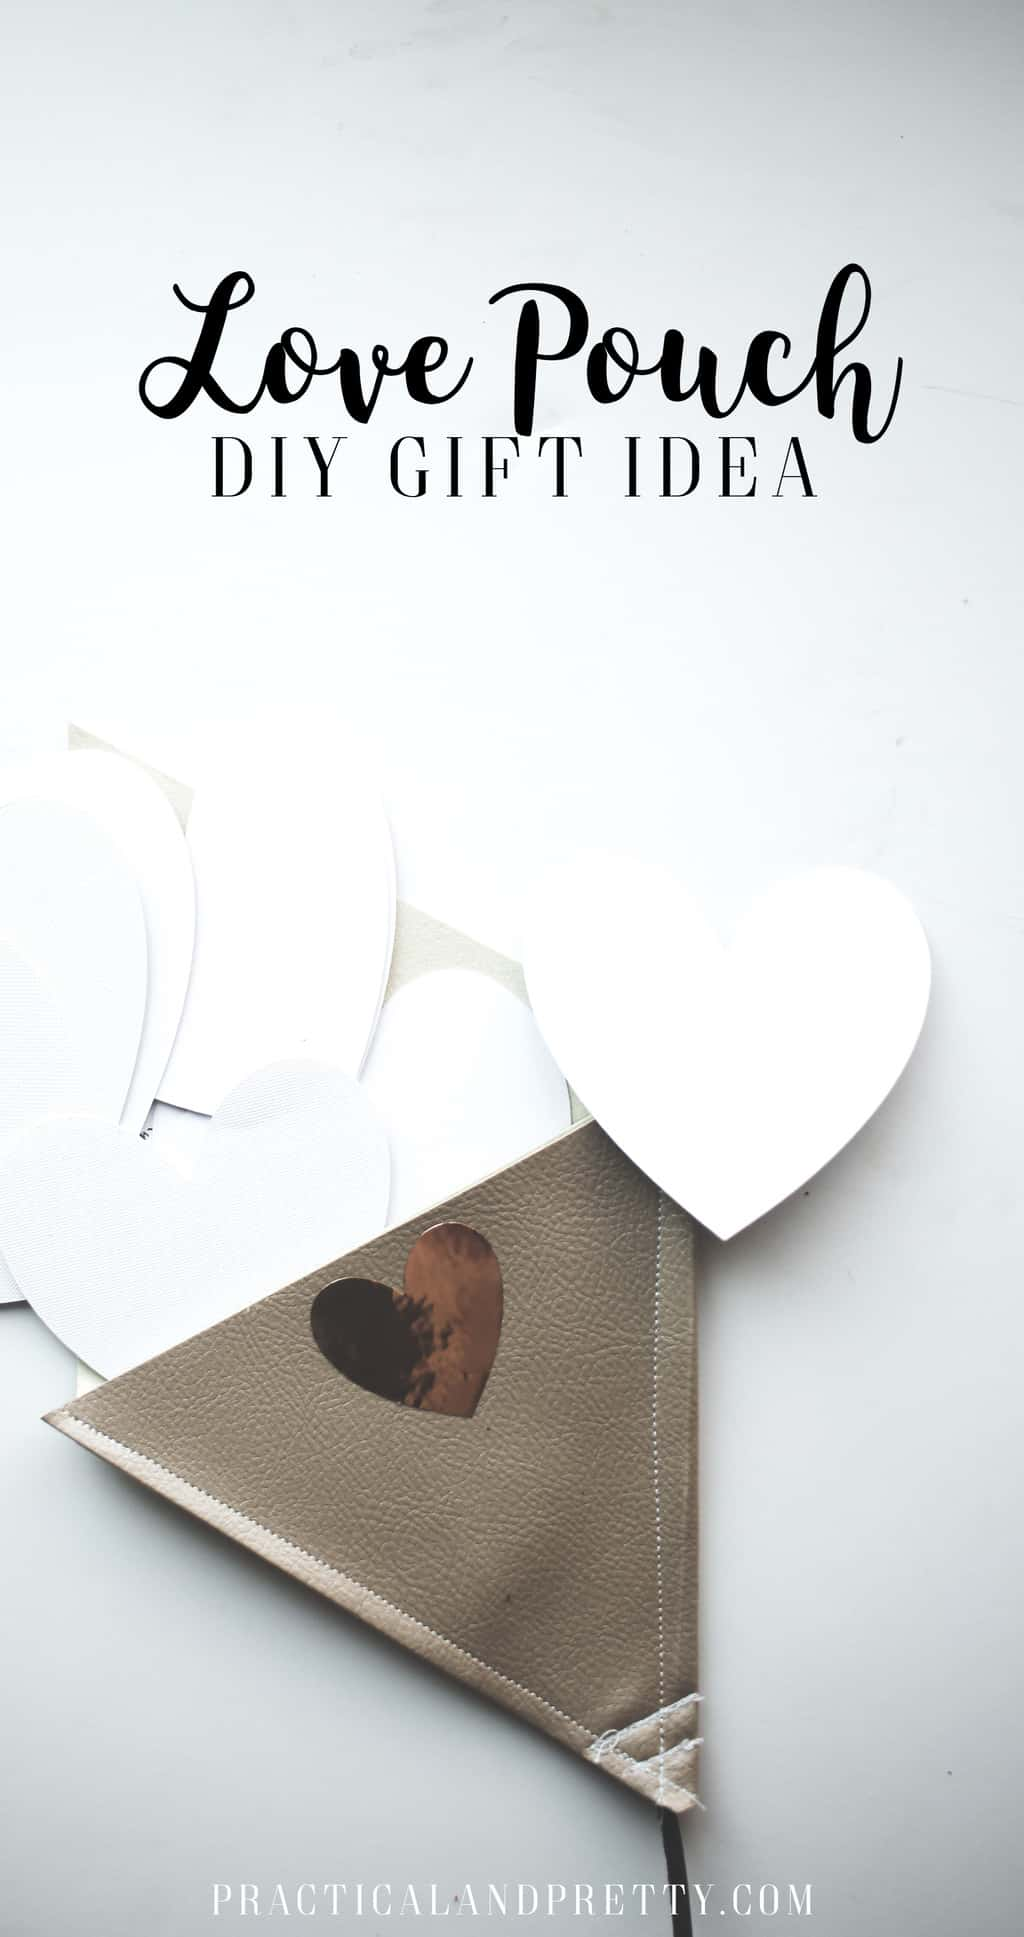 Do you have someone in you life you could swap some love notes with? This little DIY gift is a simple way to keep the love going back and forth!